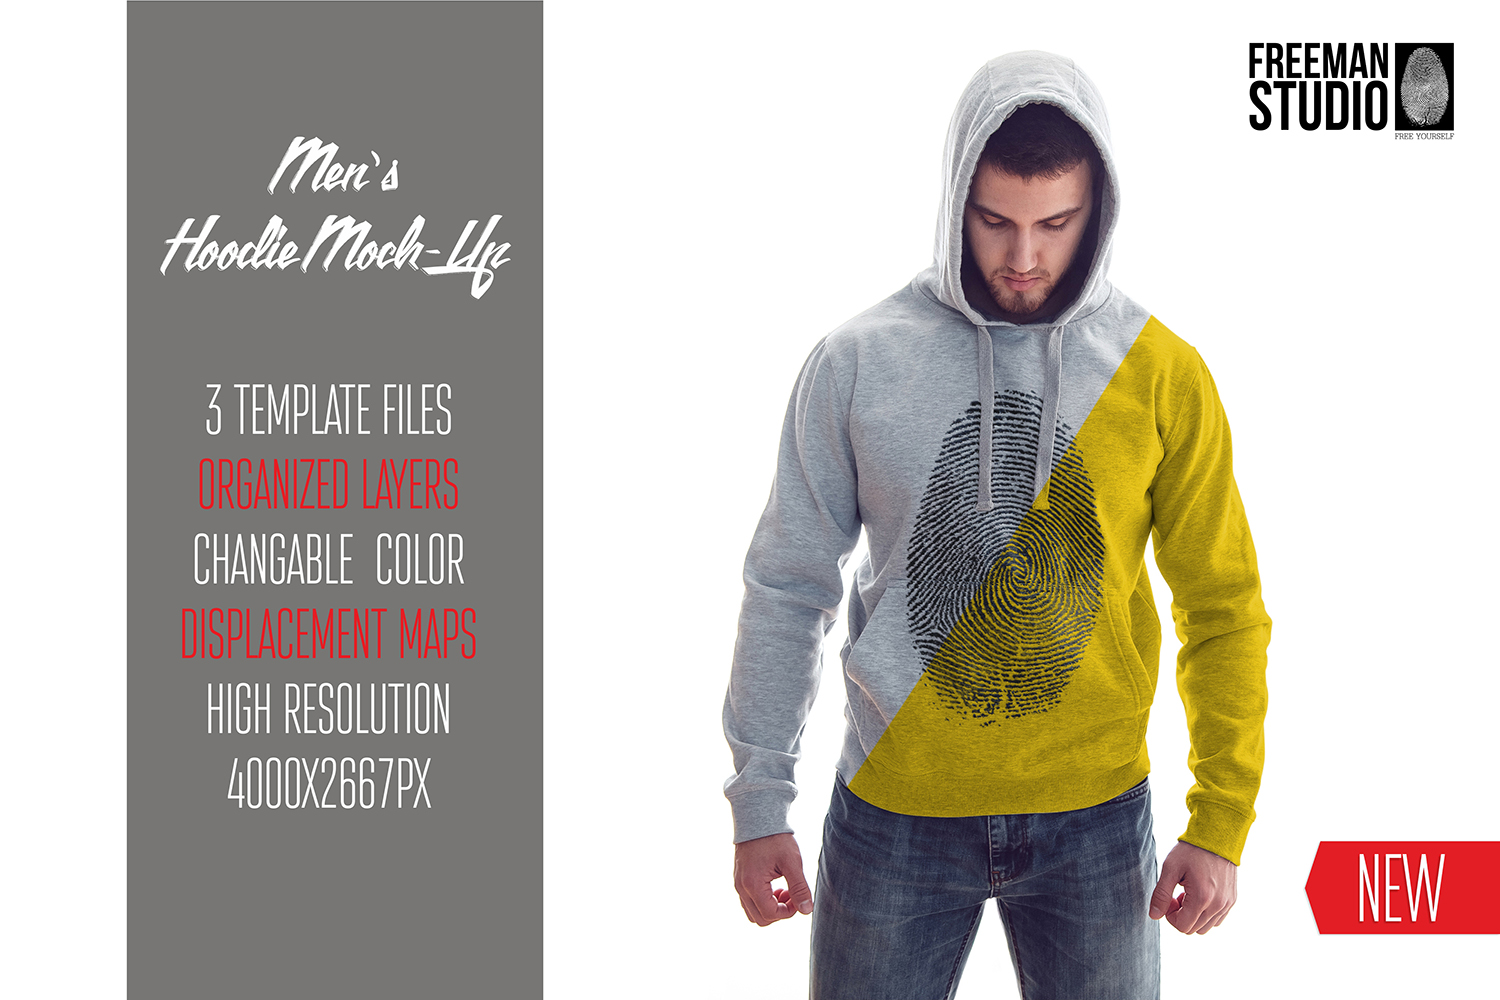 Men's Hoodie Mock-Up example image 1